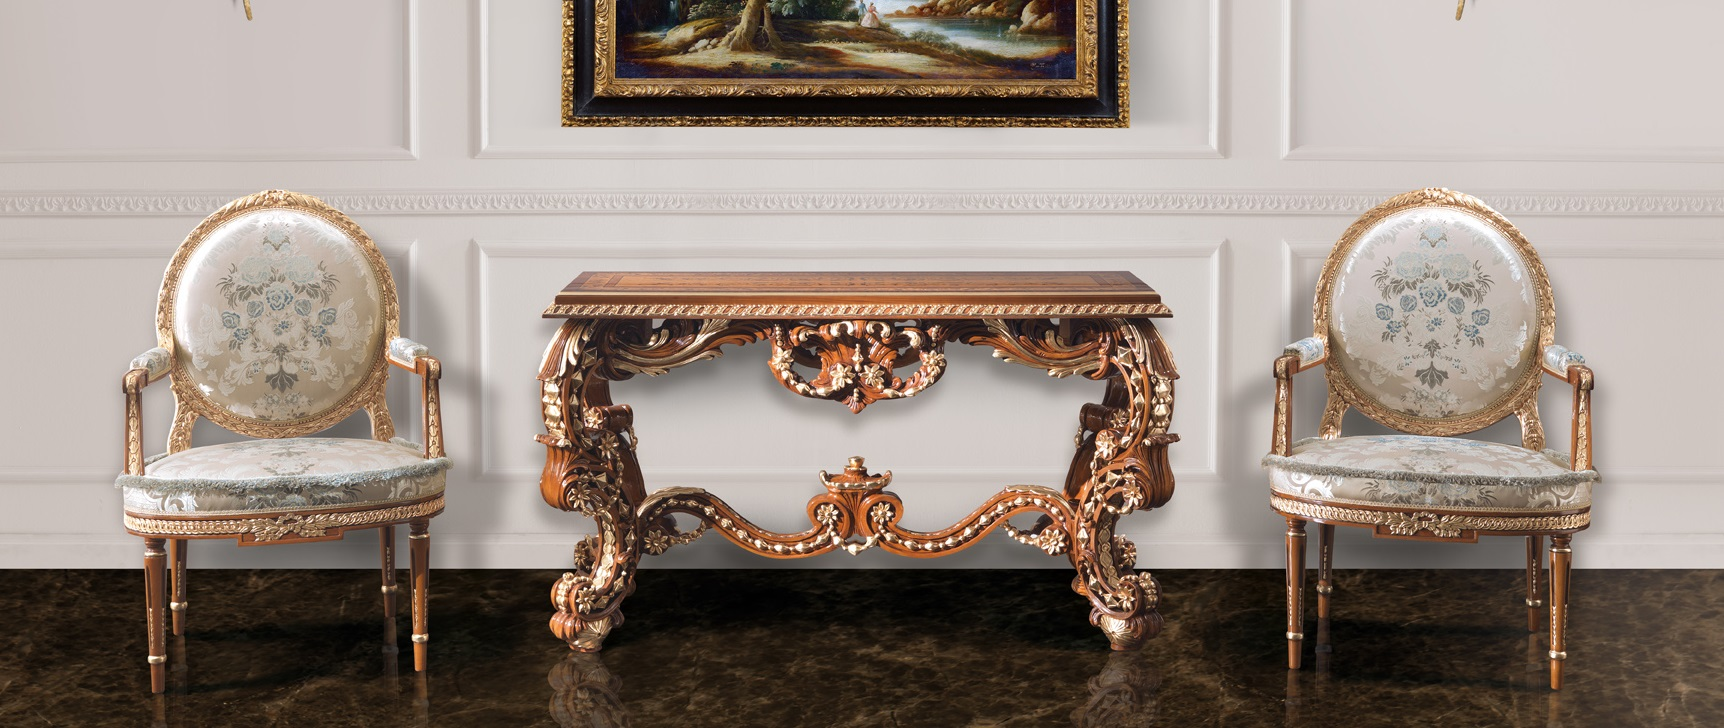 2031 small armchair, 3182 console table